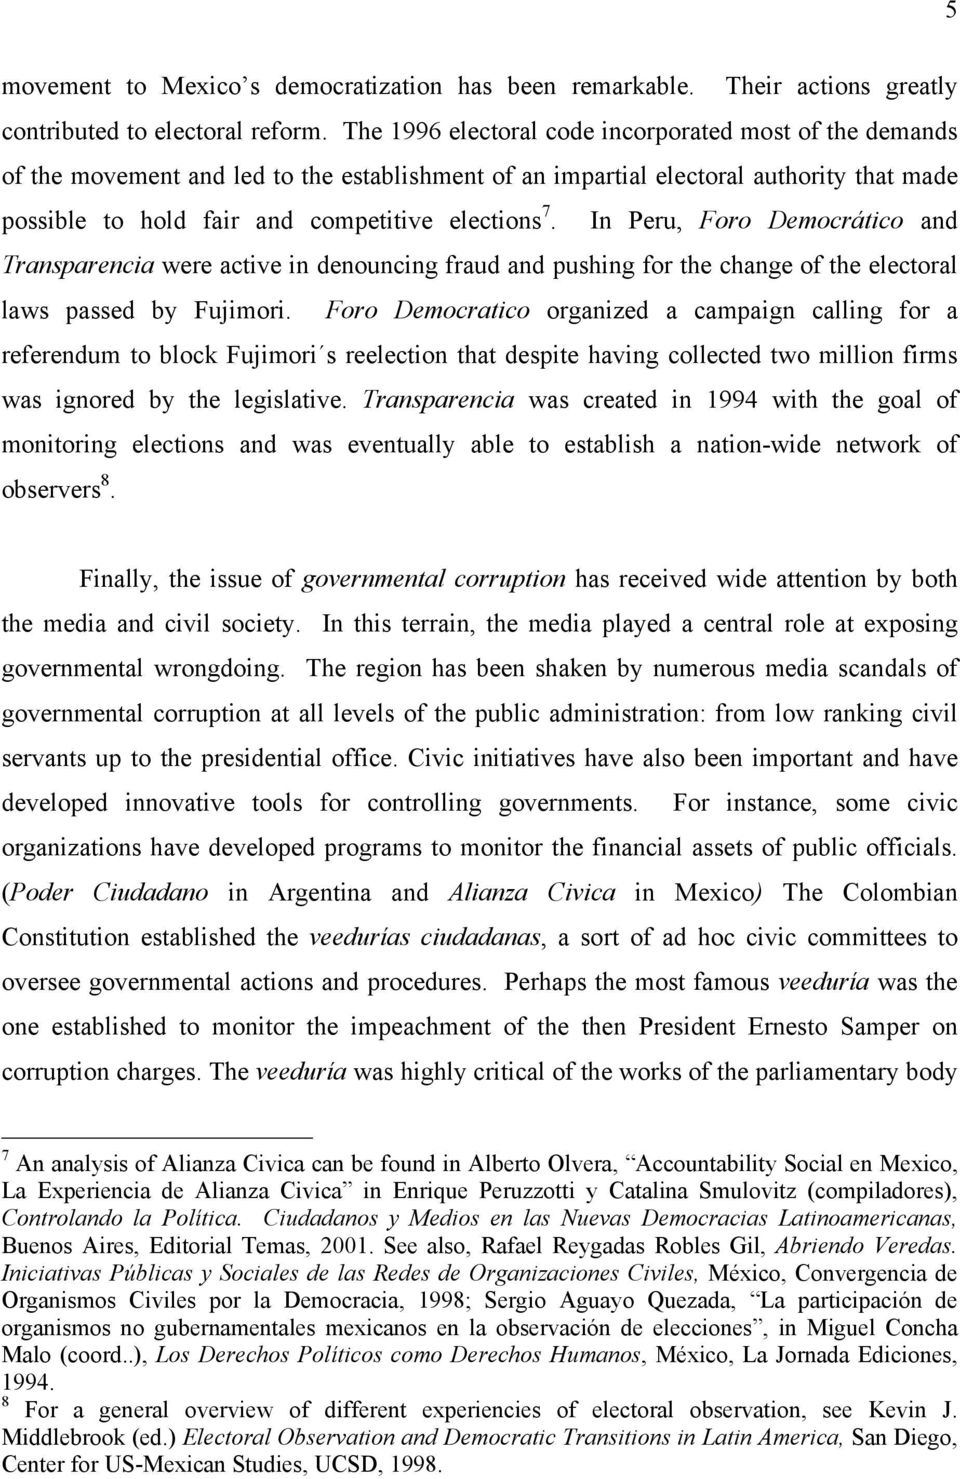 In Peru, Foro Democrático and Transparencia were active in denouncing fraud and pushing for the change of the electoral laws passed by Fujimori.